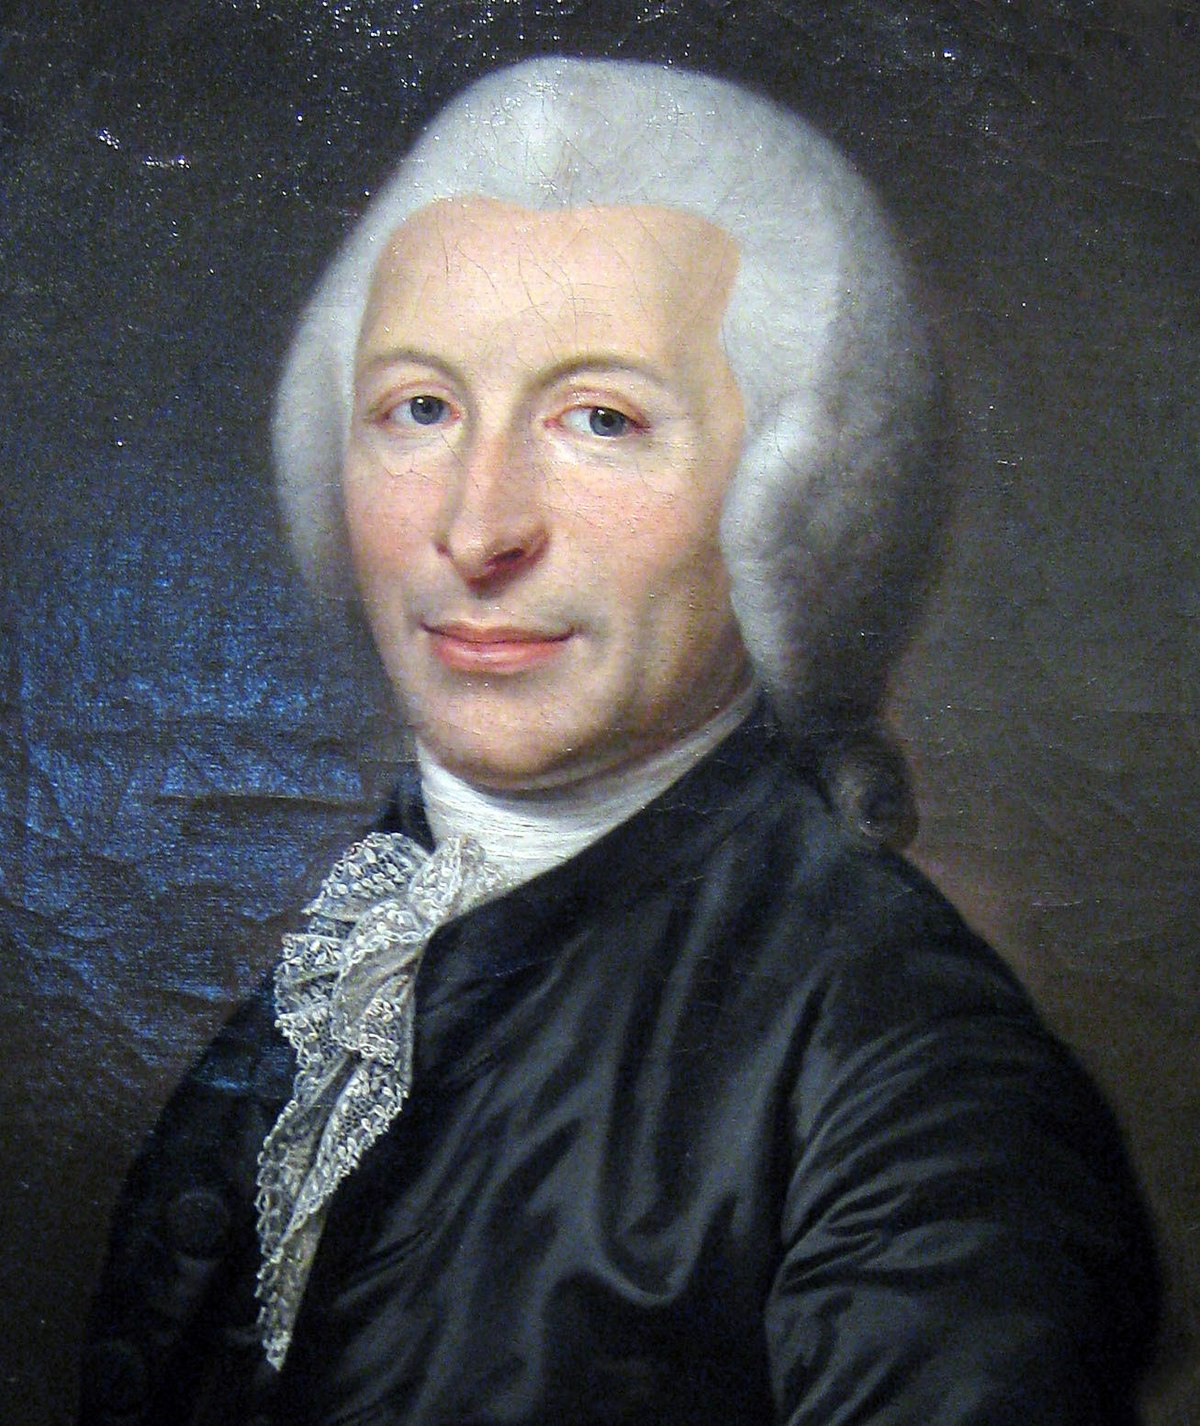 28 novembre 1789: Le docteur Guillotin présente son invention 1200px-Joseph-Ignace_Guillotin_cropped